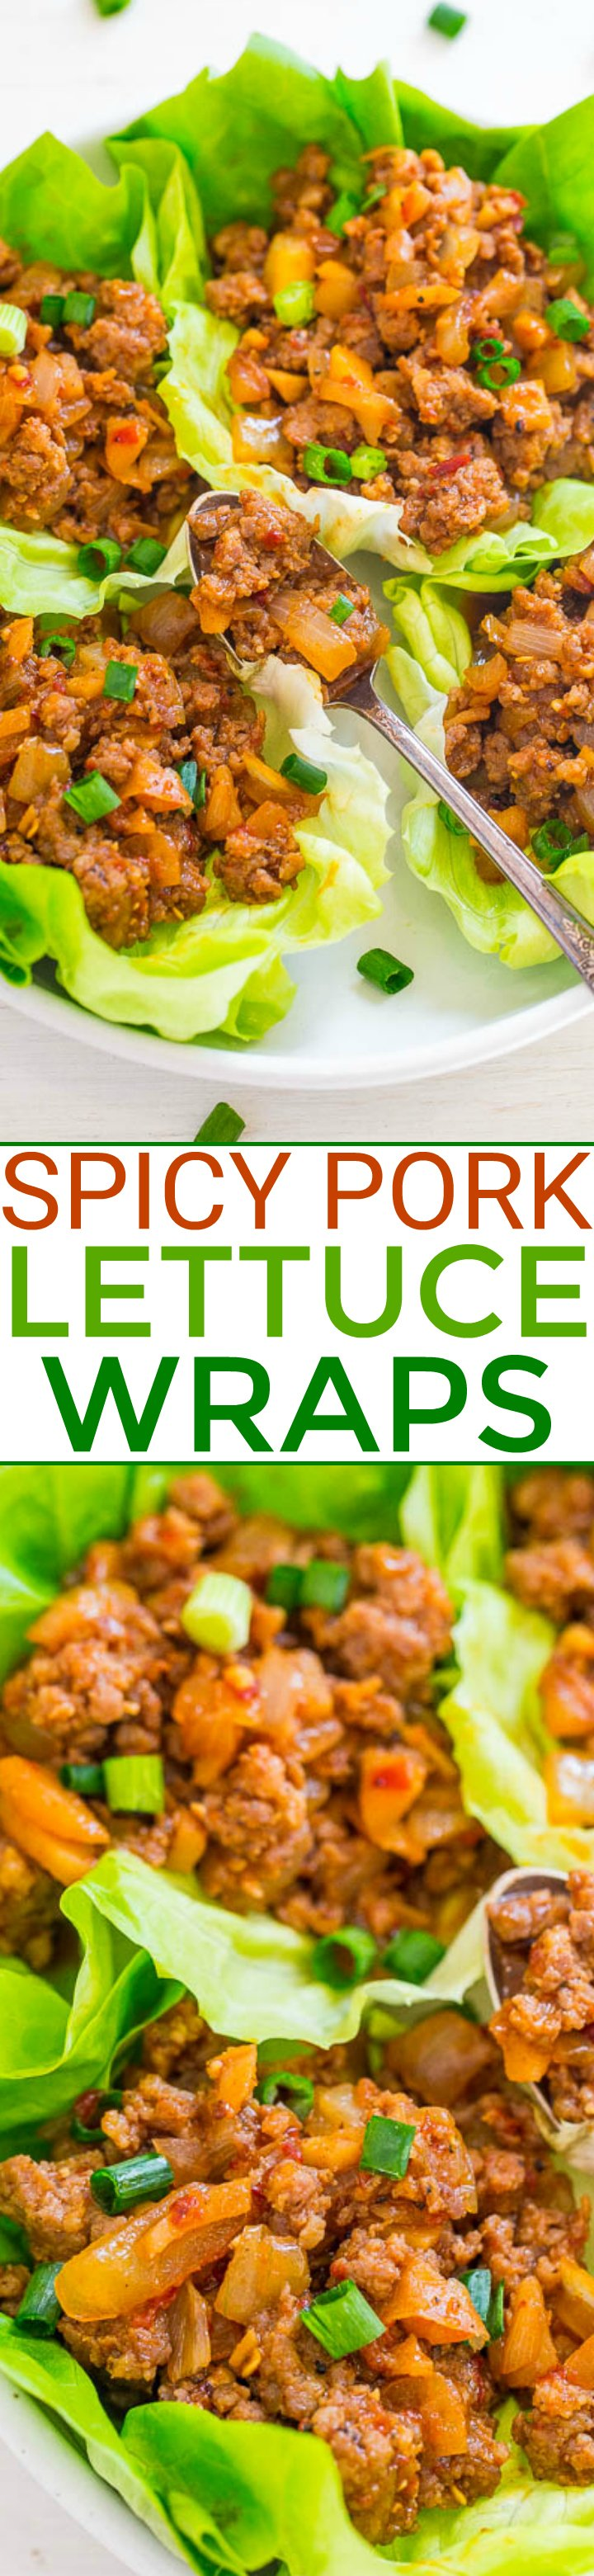 Spicy Pork Lettuce Wraps - EASY, ready in 20 minutes, perfectly SPICY yet wonderfully fresh!! Just enough heat to keep you going back for more! A new dinnertime WINNER!!